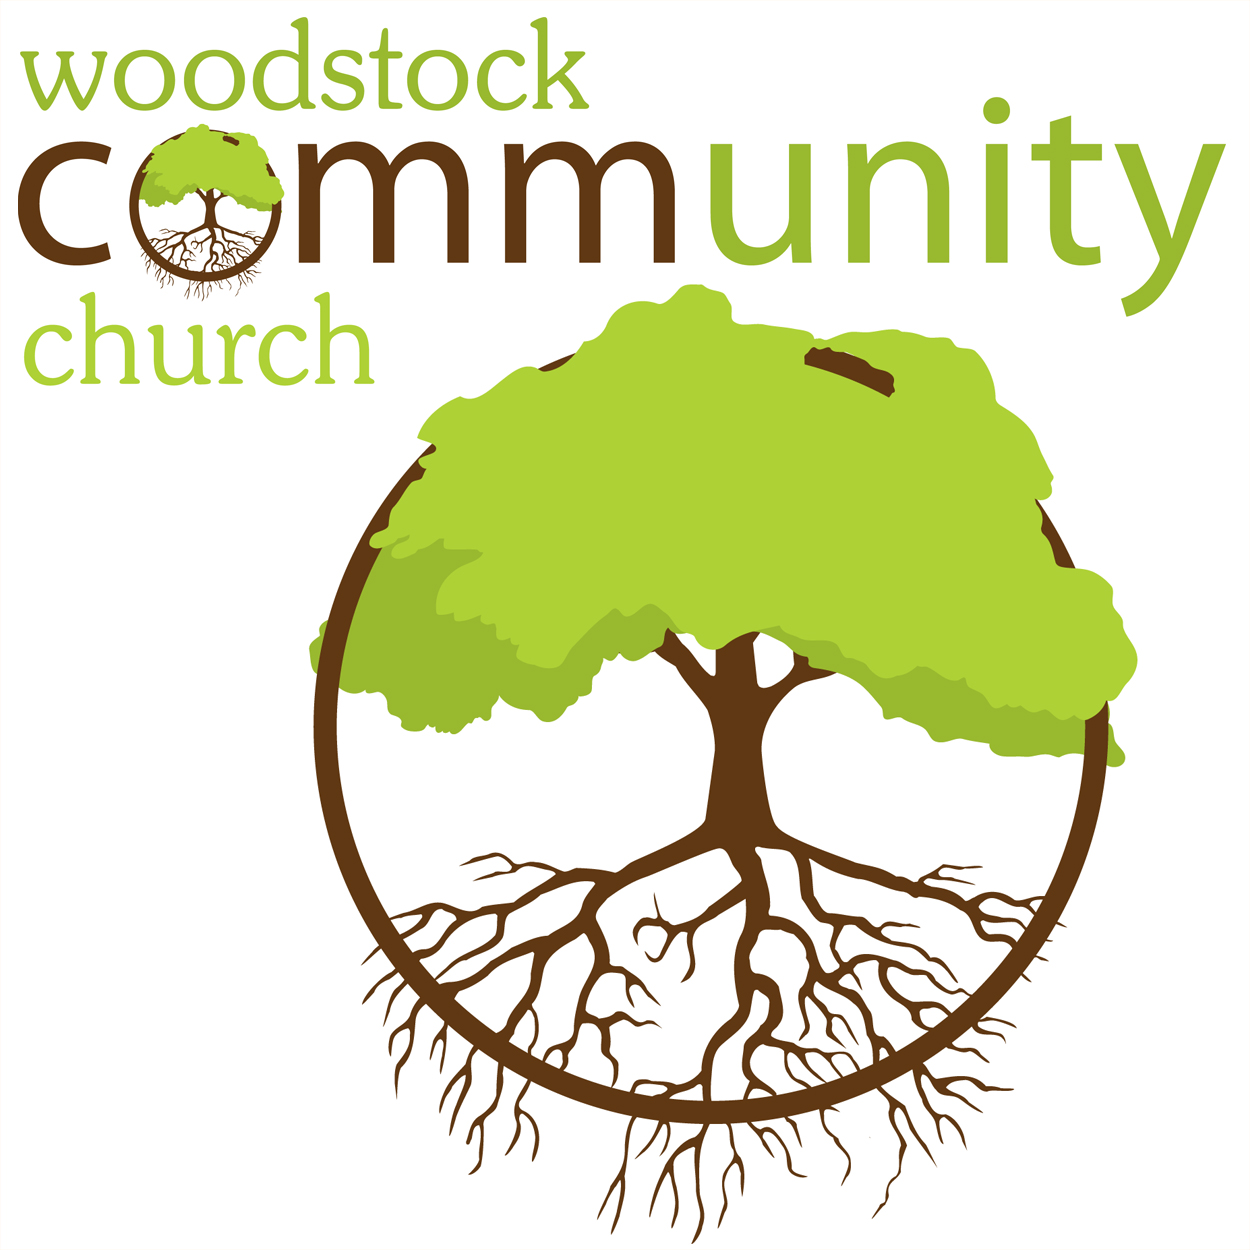 Woodstock Community Church